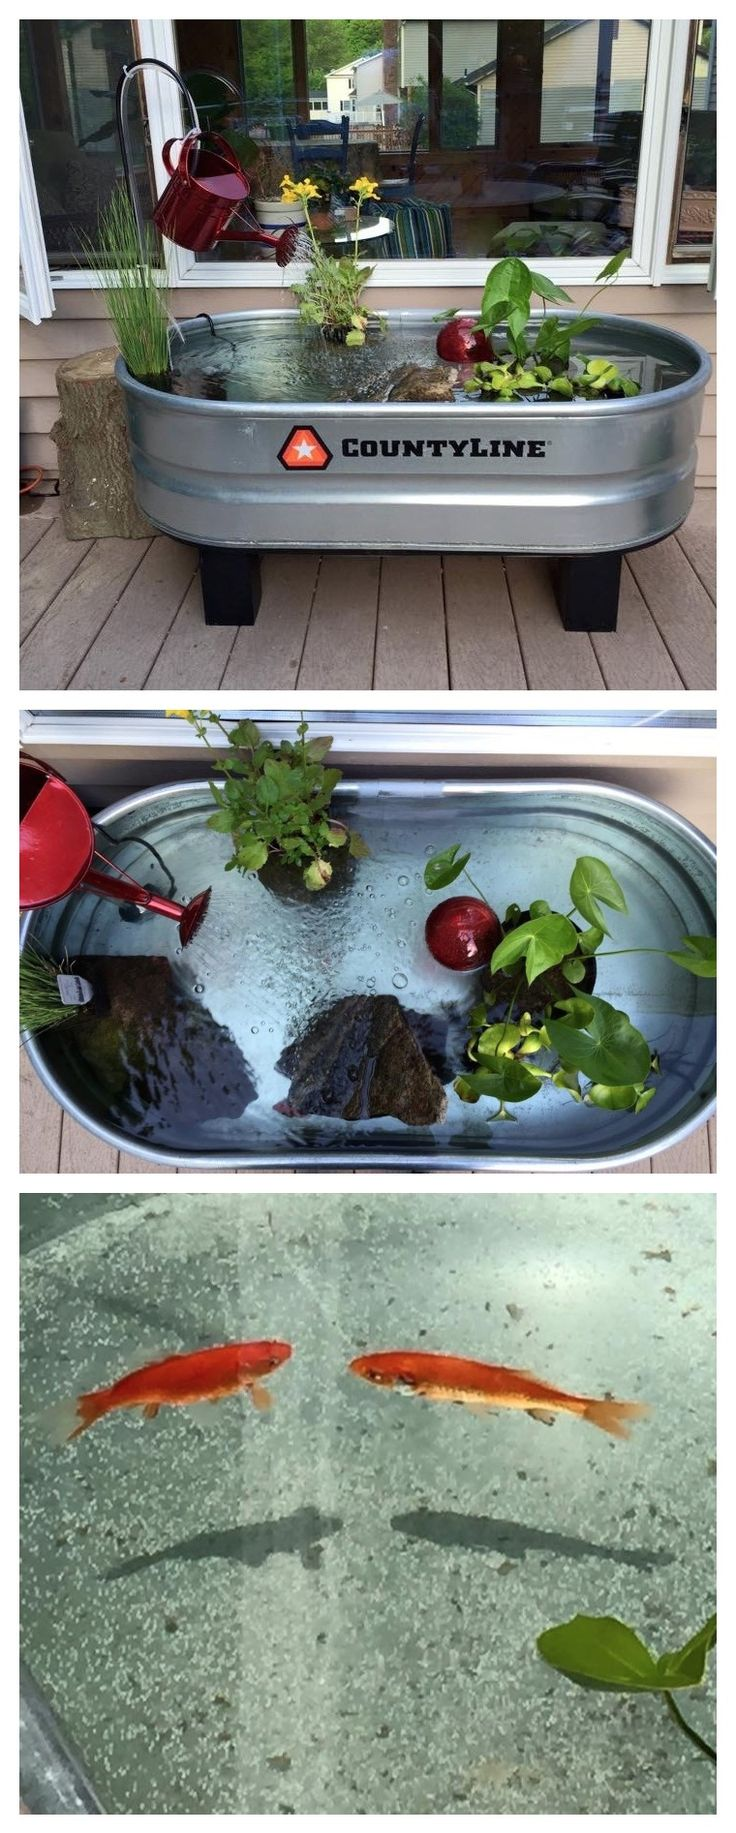 Goldfish pond species decor references - Goldfish Pond Species Decor References Make Pond Out Of A Horse Trough Just Add Water Download